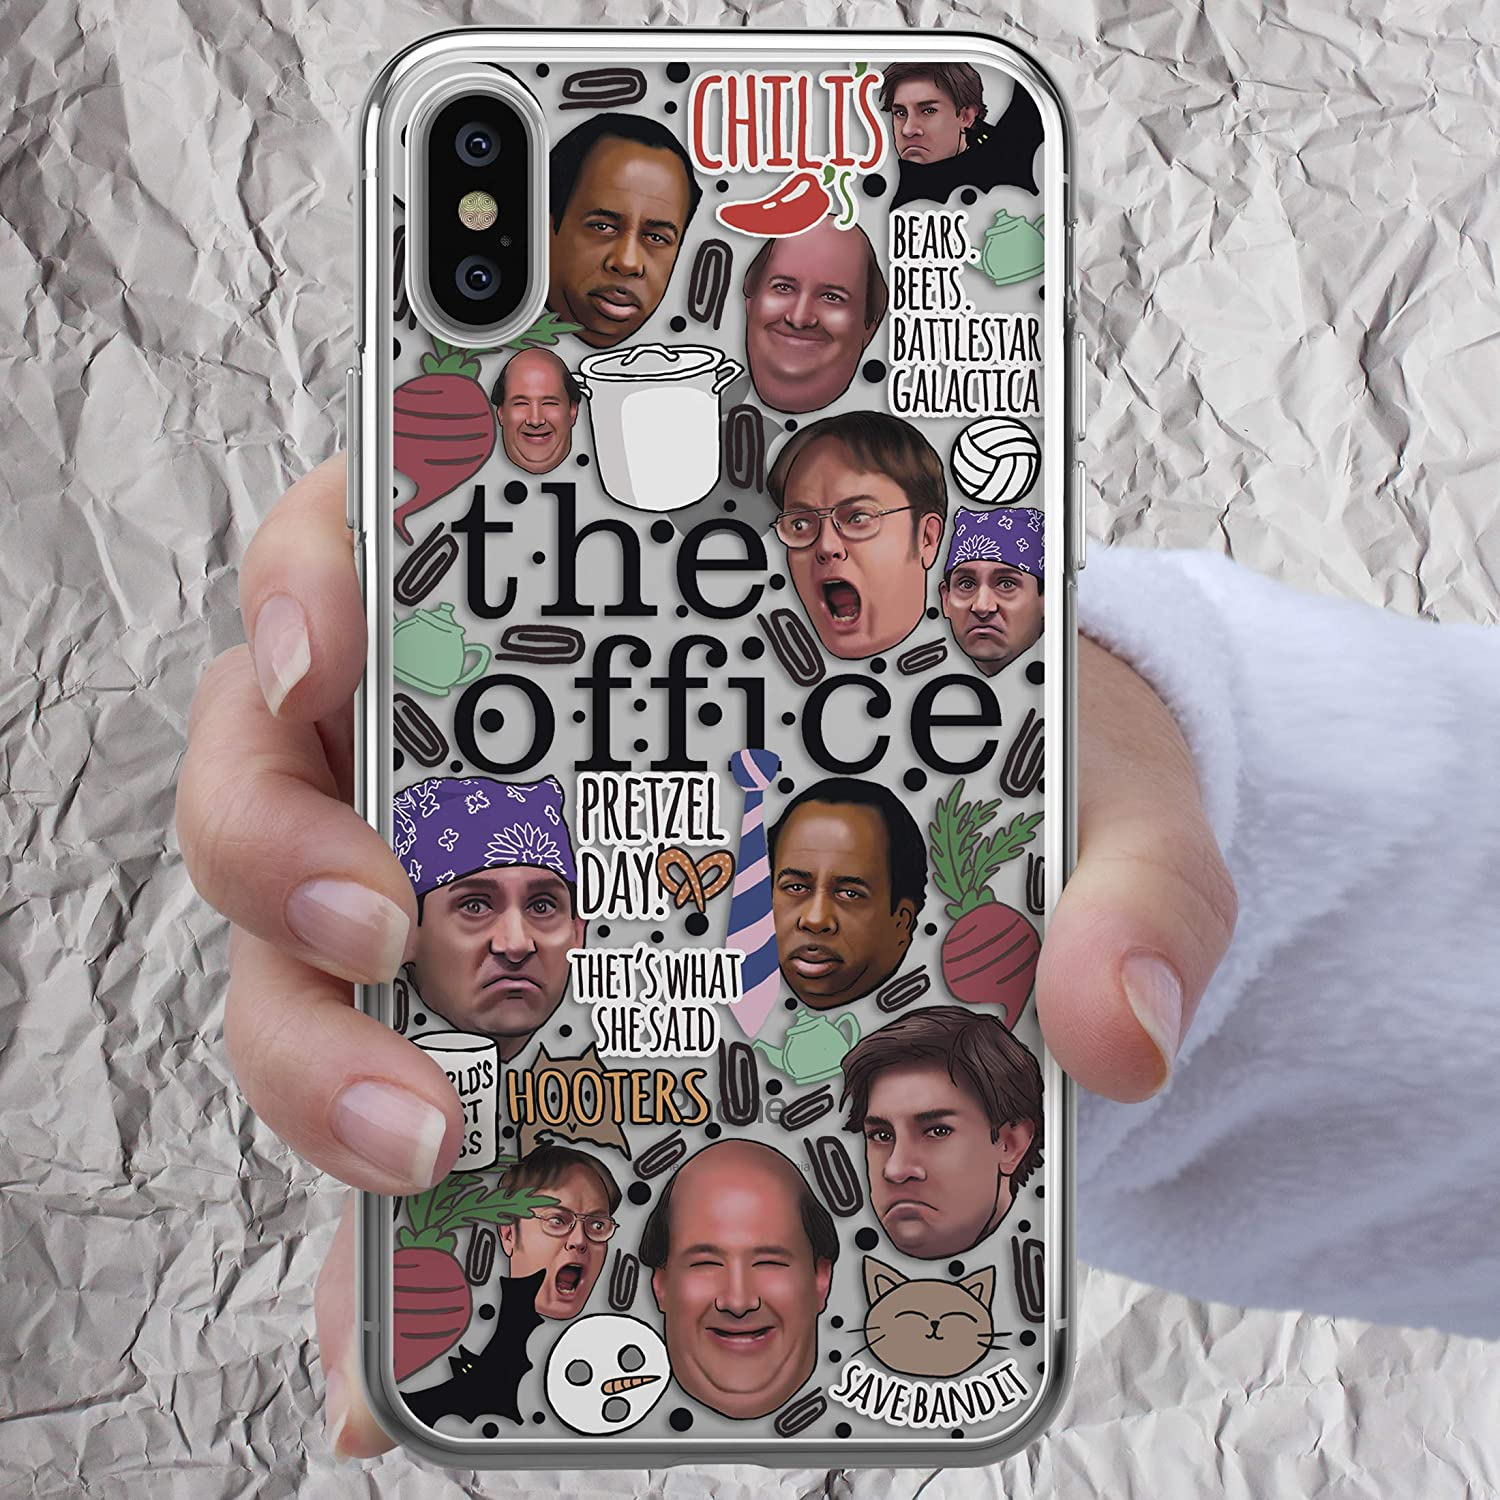 Dunder Mifflin Coffee Mug Pretzel Day The Office Tv Show Gifts Dwight Schrute Farms iPhone Xs 11 Pro Max X Xr 8 7 6s 6 Plus se 5s 5c Case Bears Beets Battlestar Galactica Cell i Phone Clear Cover